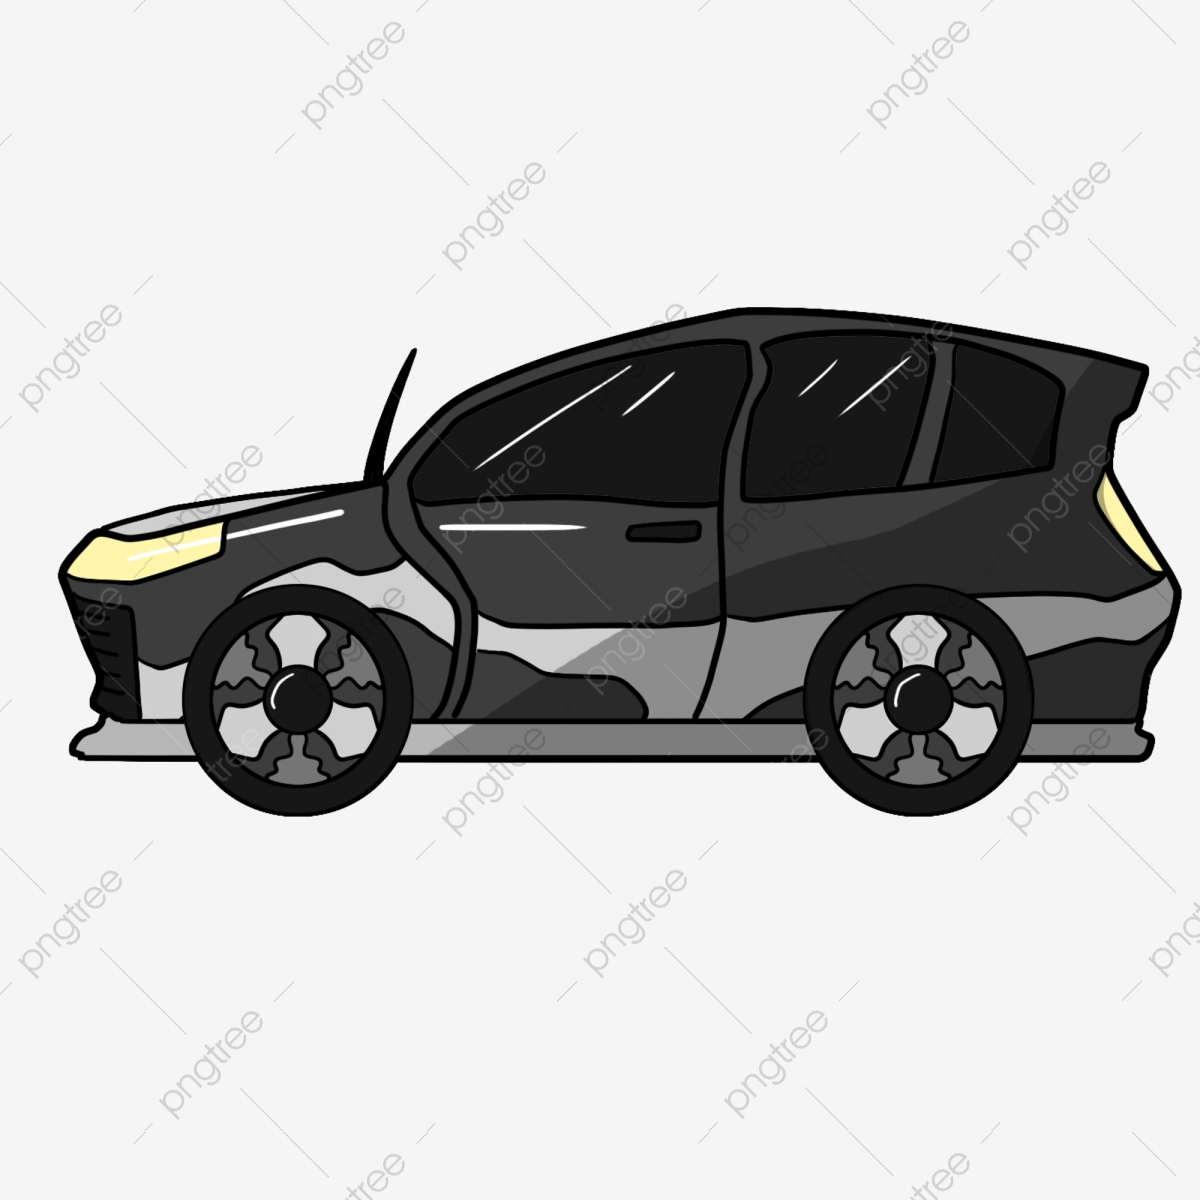 Cartoon Car Car Cartoon Cartoon Car Travel Black Outdoor Car Png Transparent Clipart Image And Psd File For Free Download